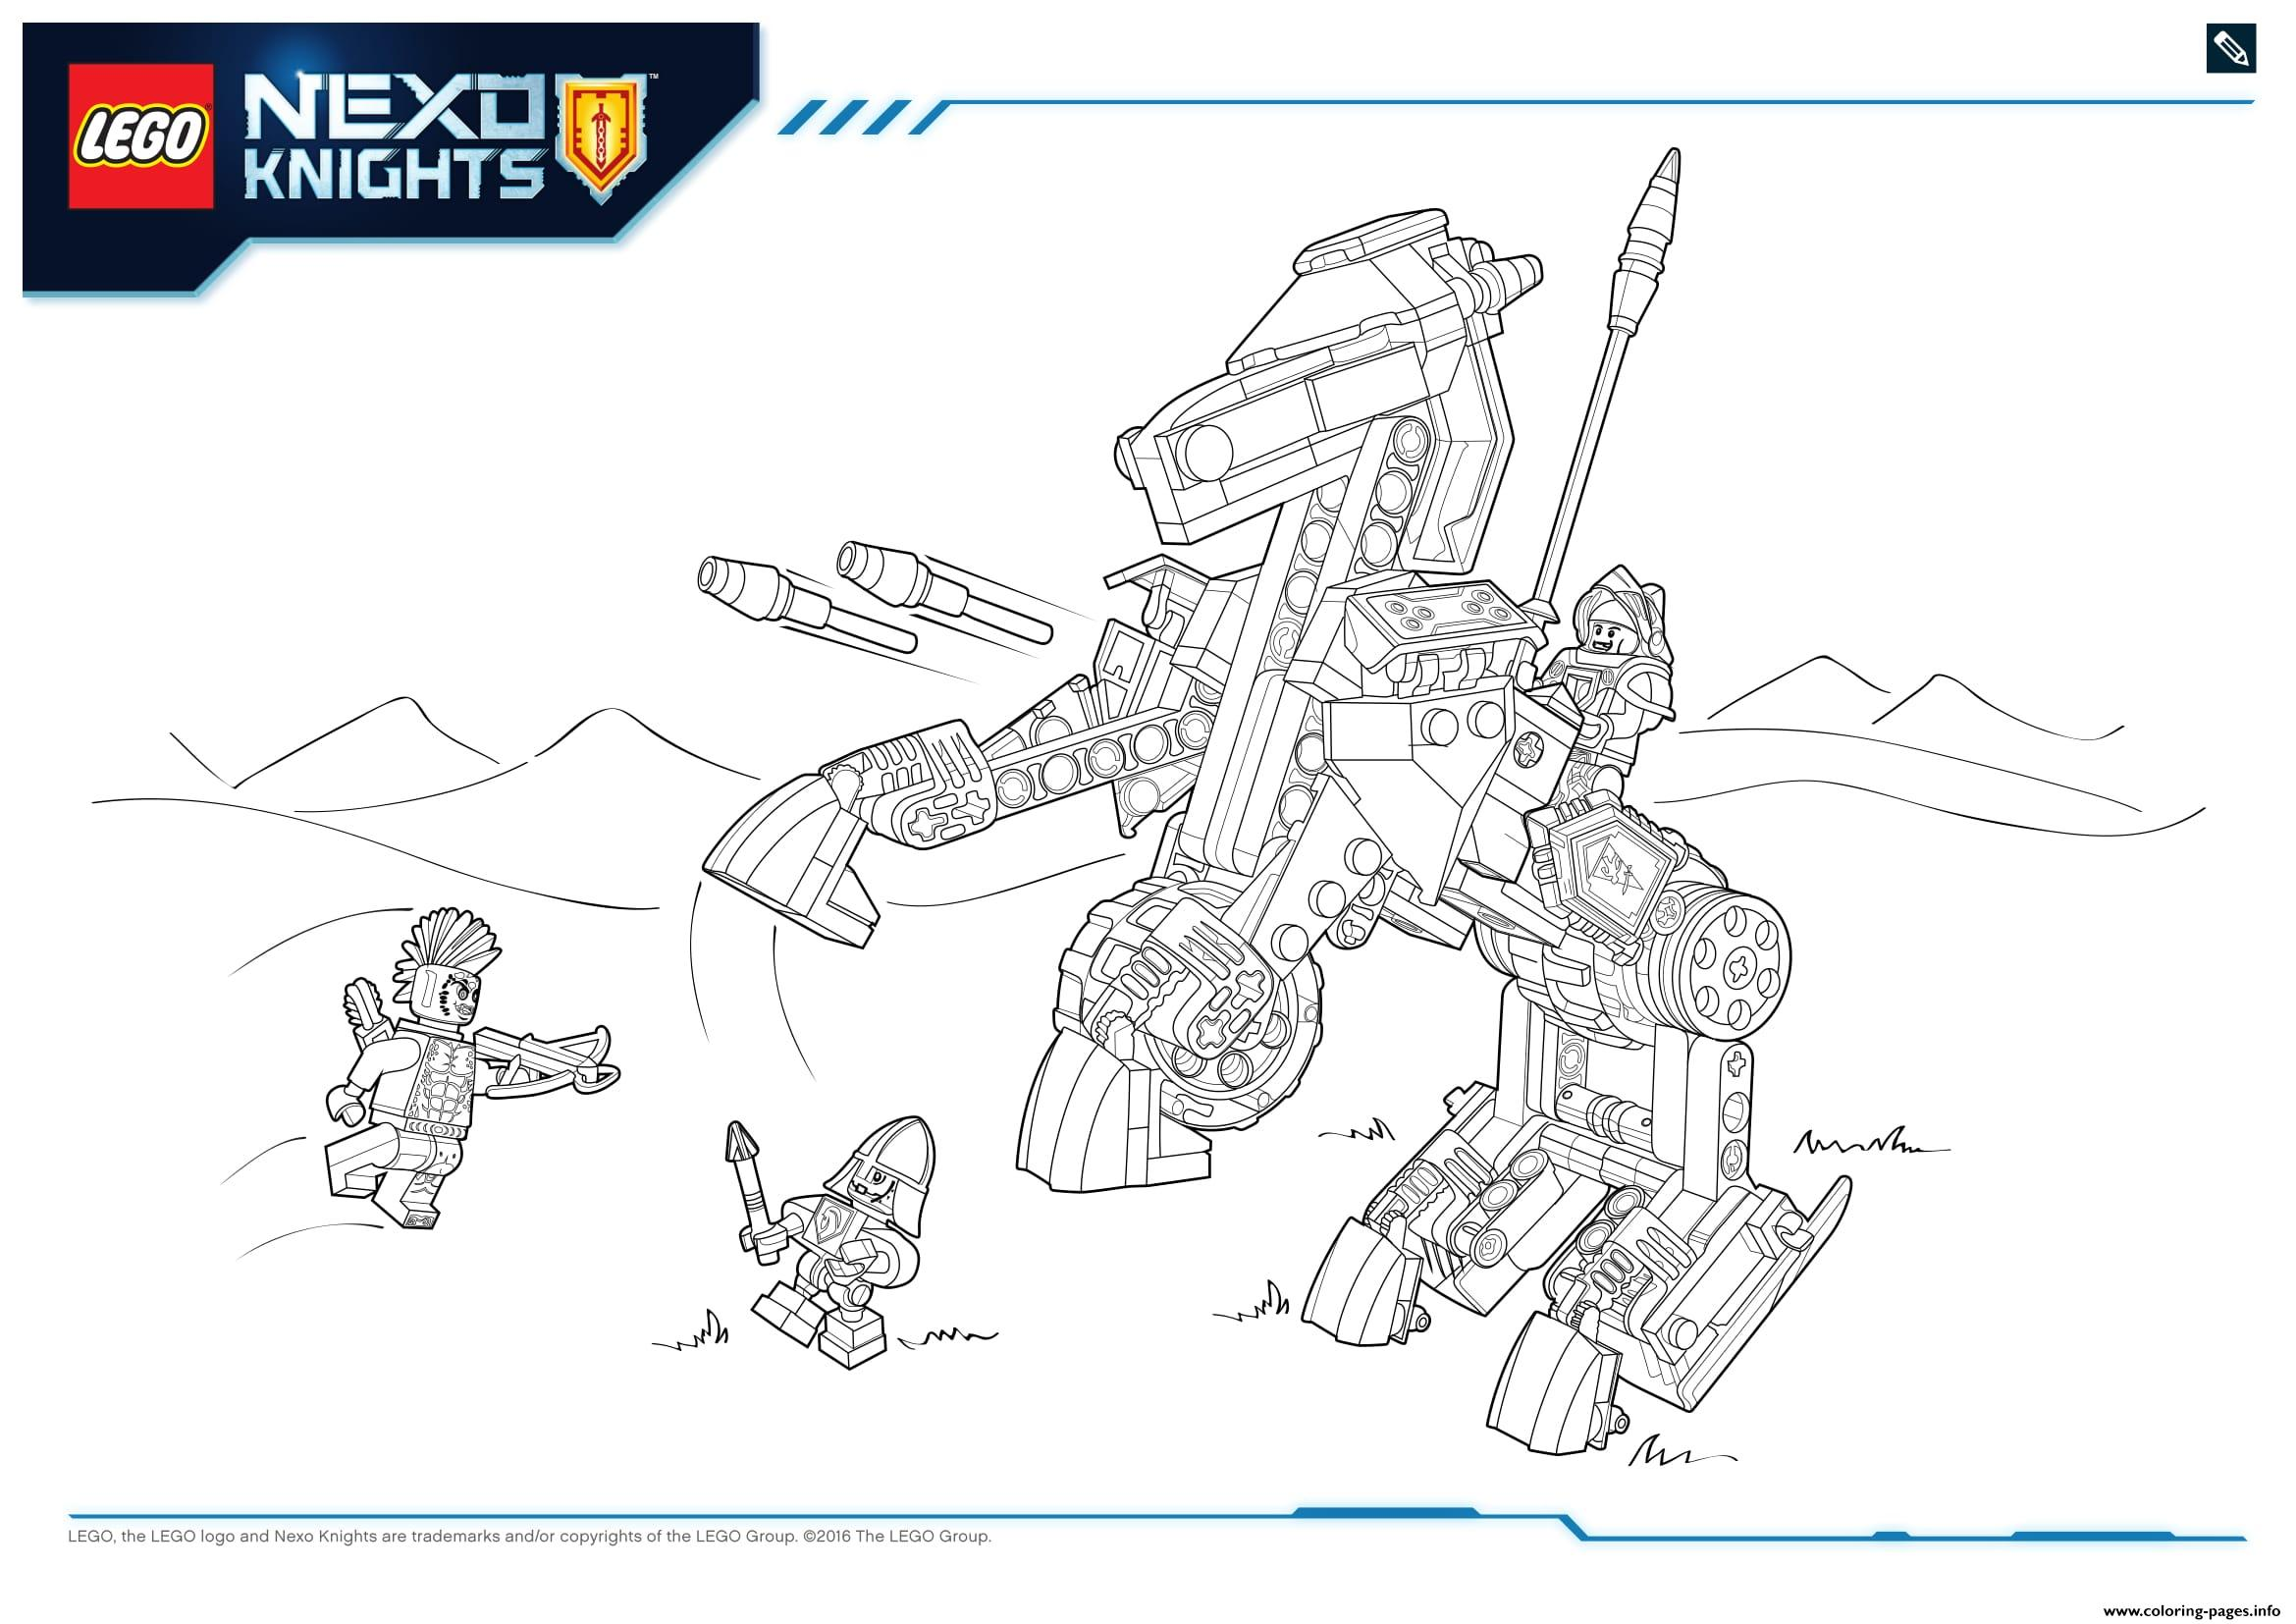 Lego NEXO KNIGHTS Products 6 Coloring